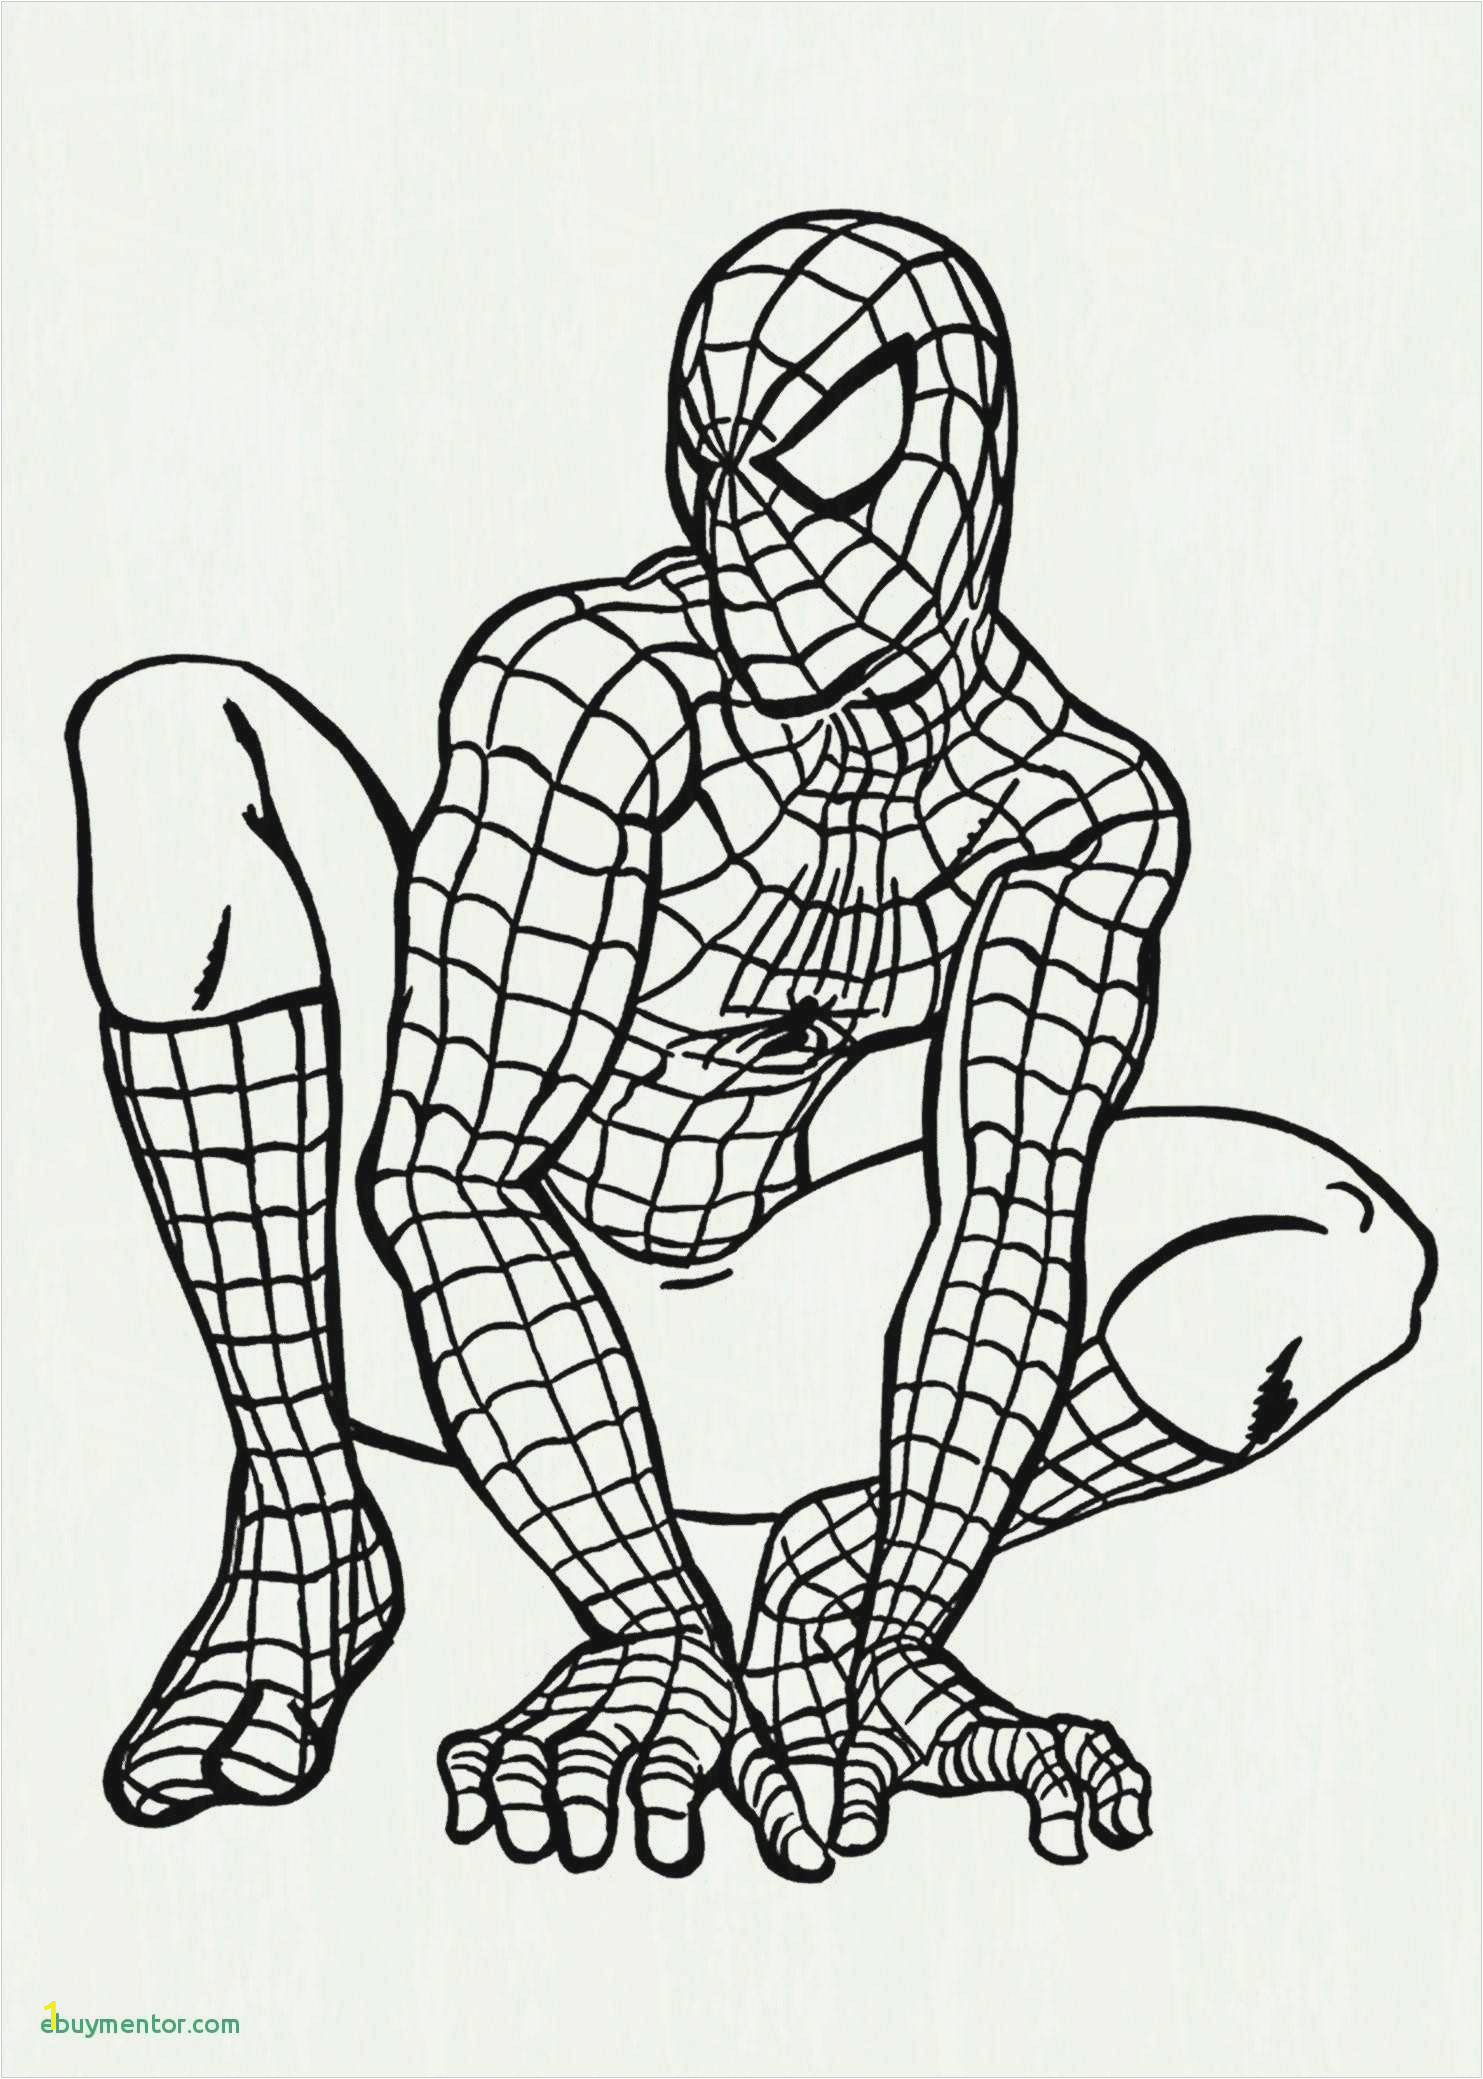 Into the Spider Verse Coloring Pages New Coloring Pages Superhero Printable Fresh 0 0d